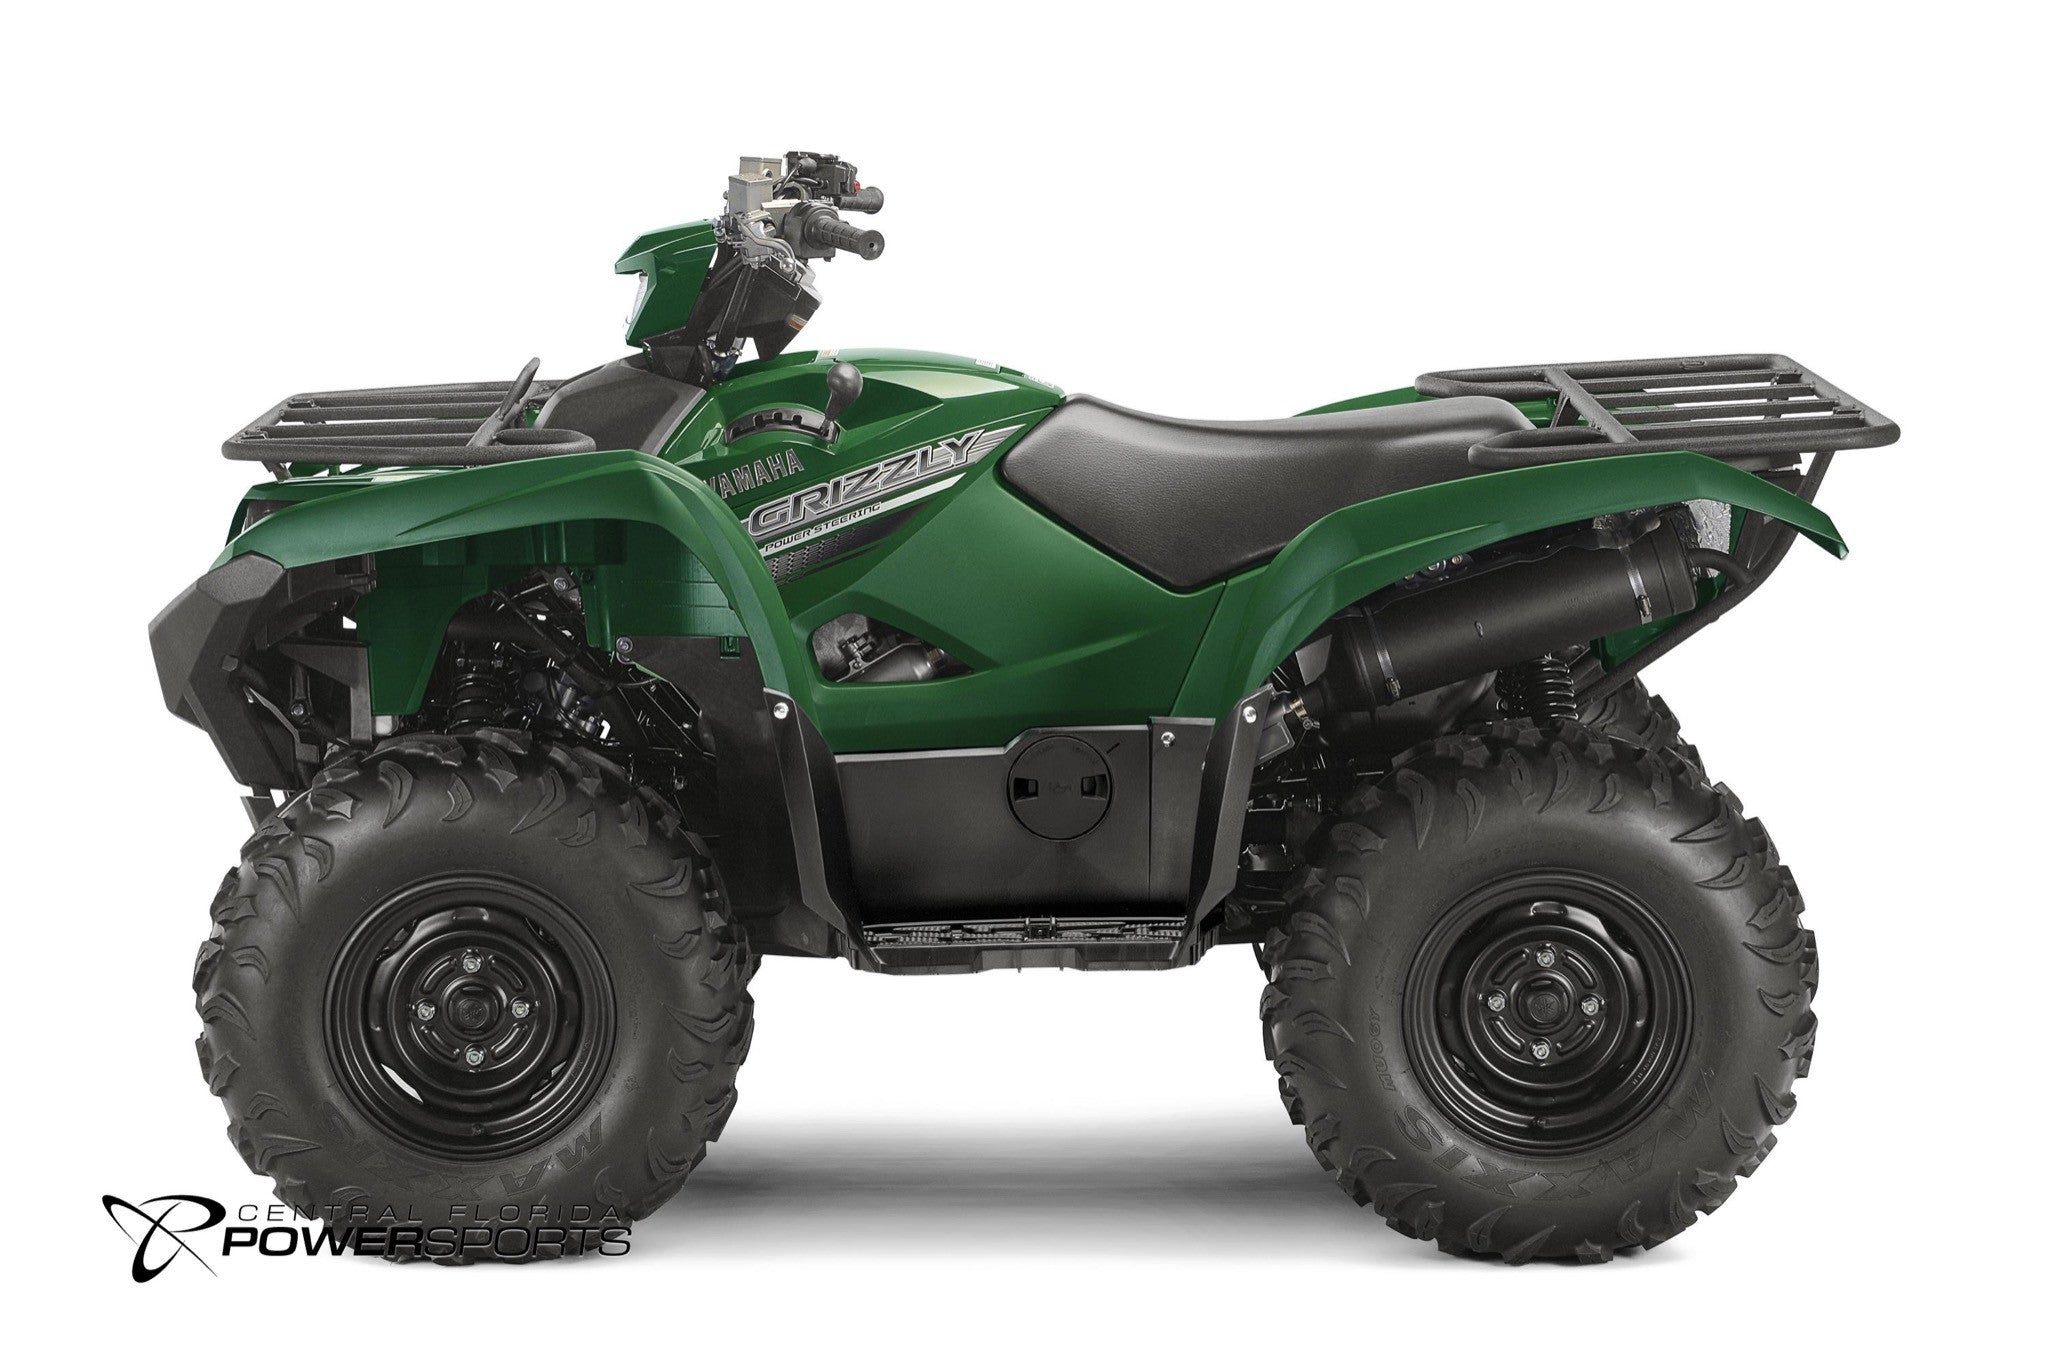 2017 yamaha grizzly 700 eps 4wd utility atv for sale central florida powersports. Black Bedroom Furniture Sets. Home Design Ideas